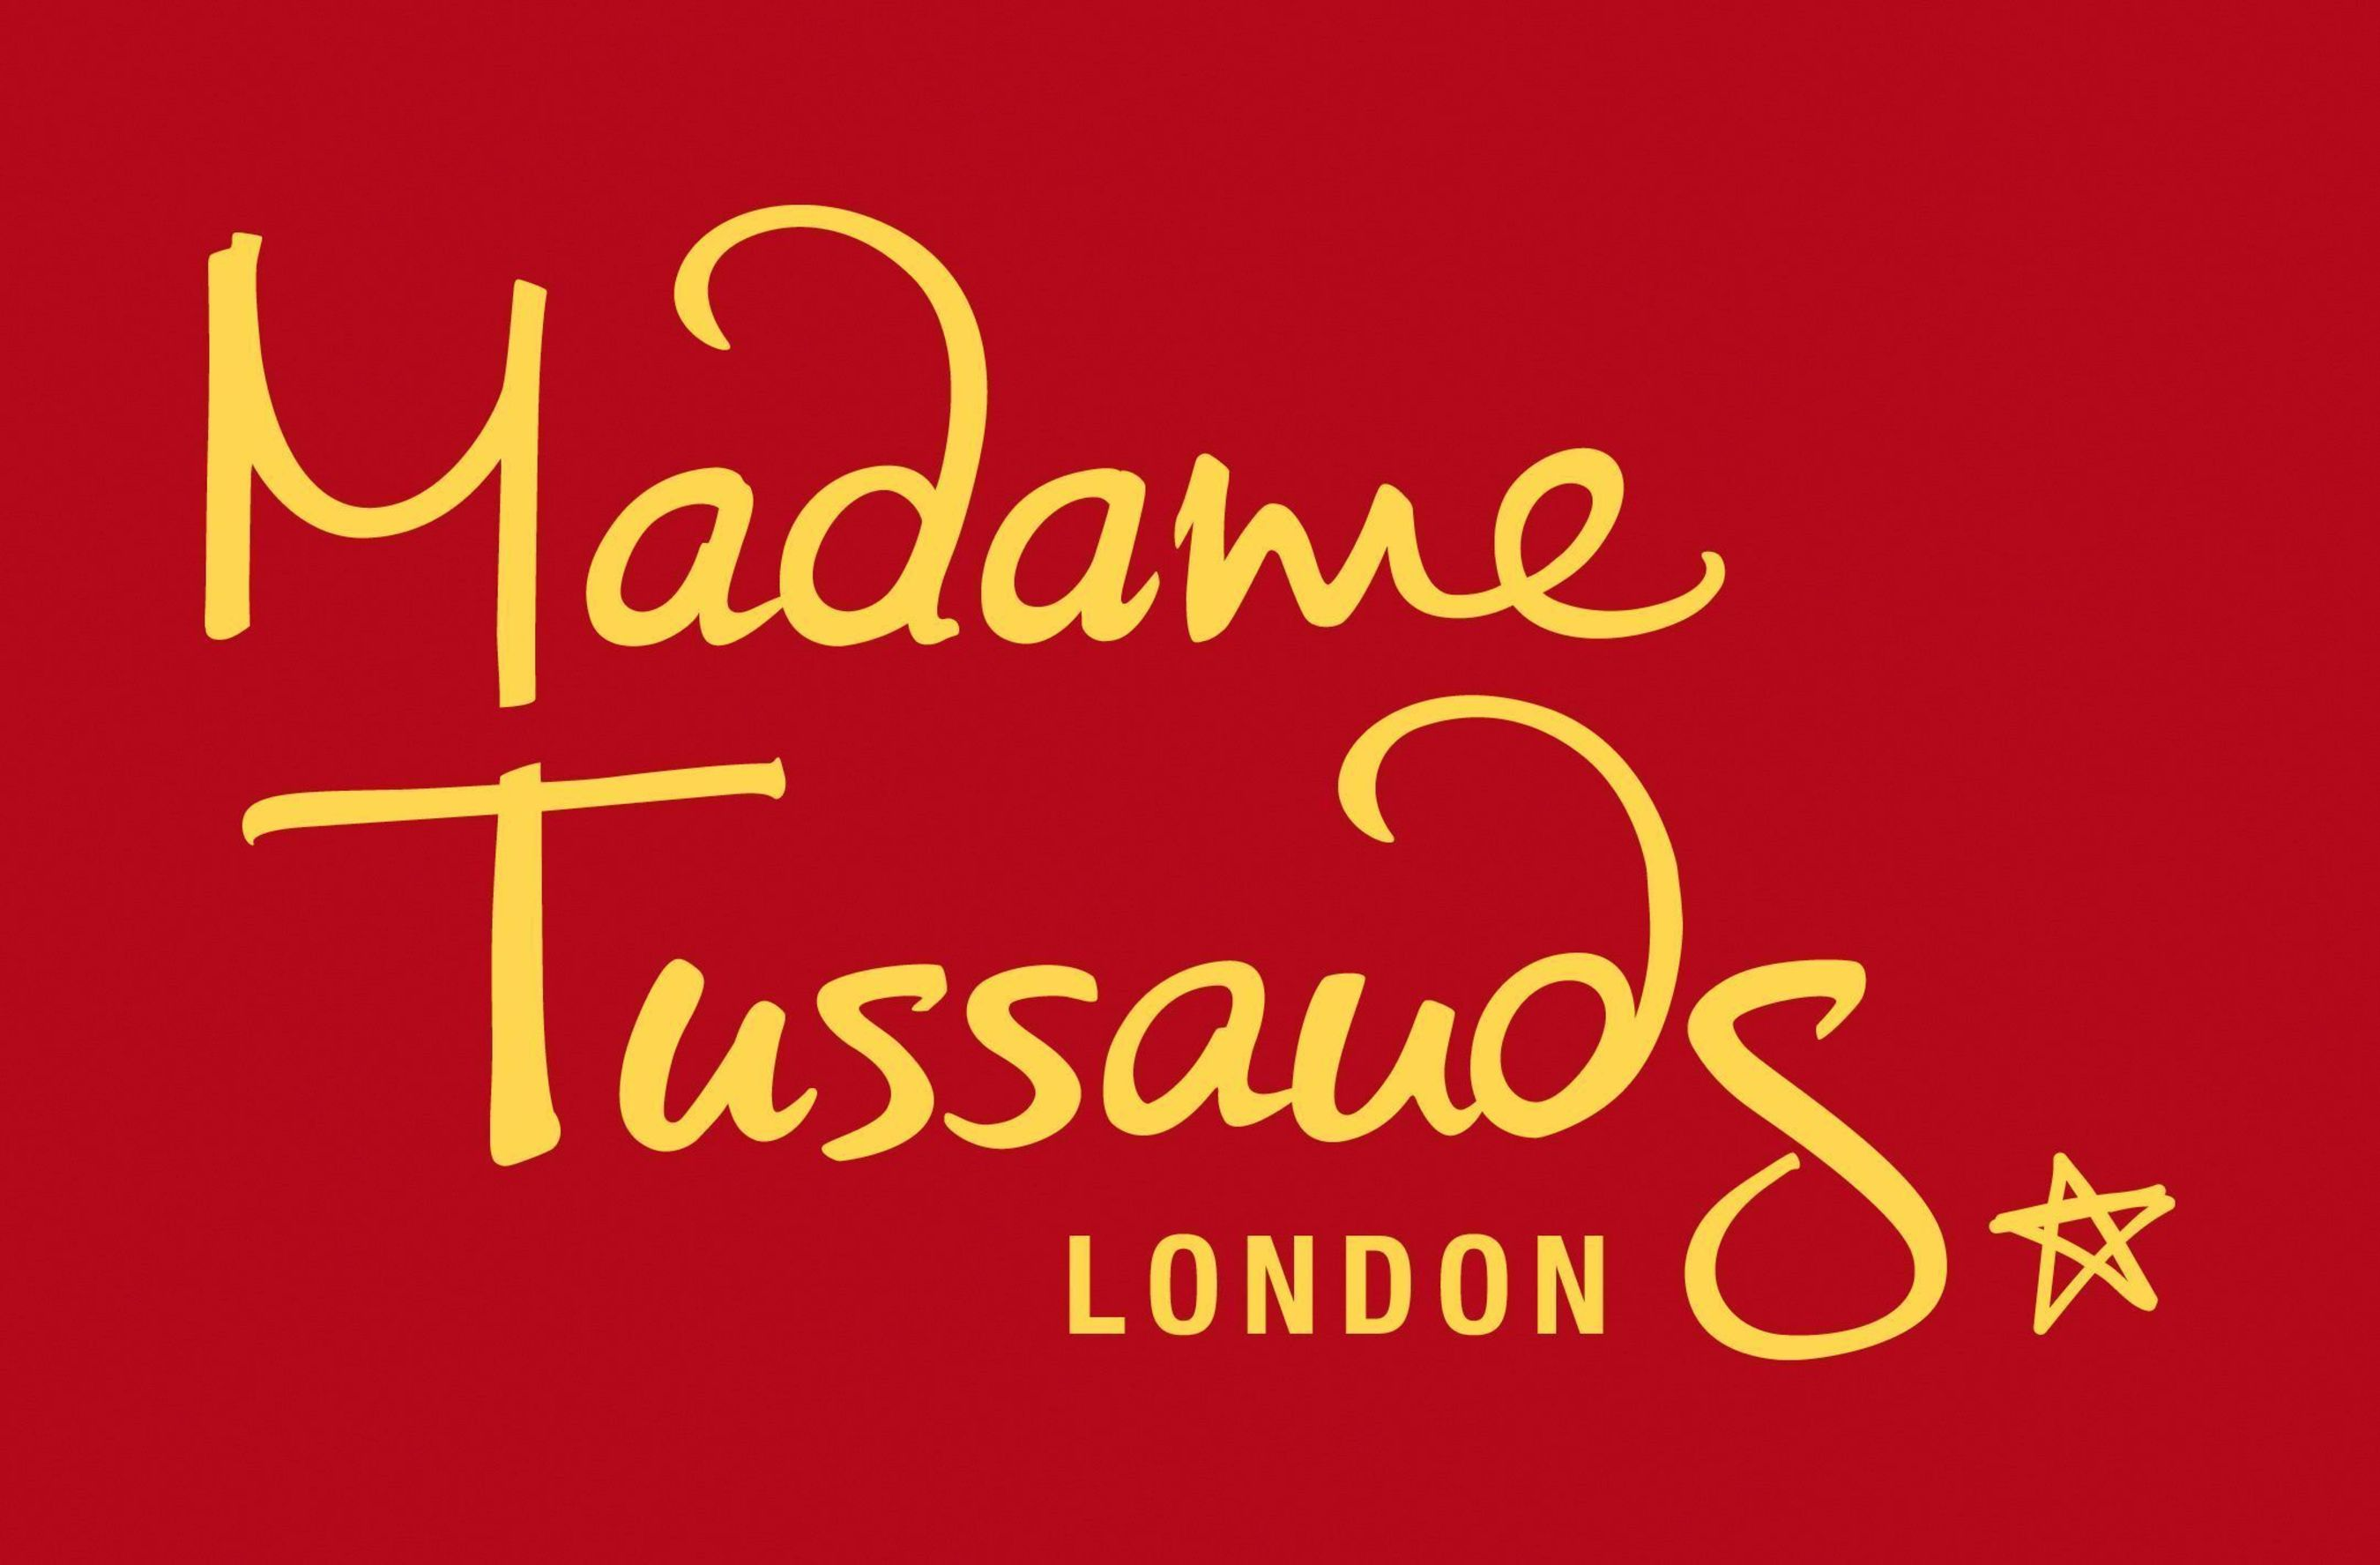 Memories Of Her Majesty at Madame Tussauds London, From August 1 '' September 30, 2015